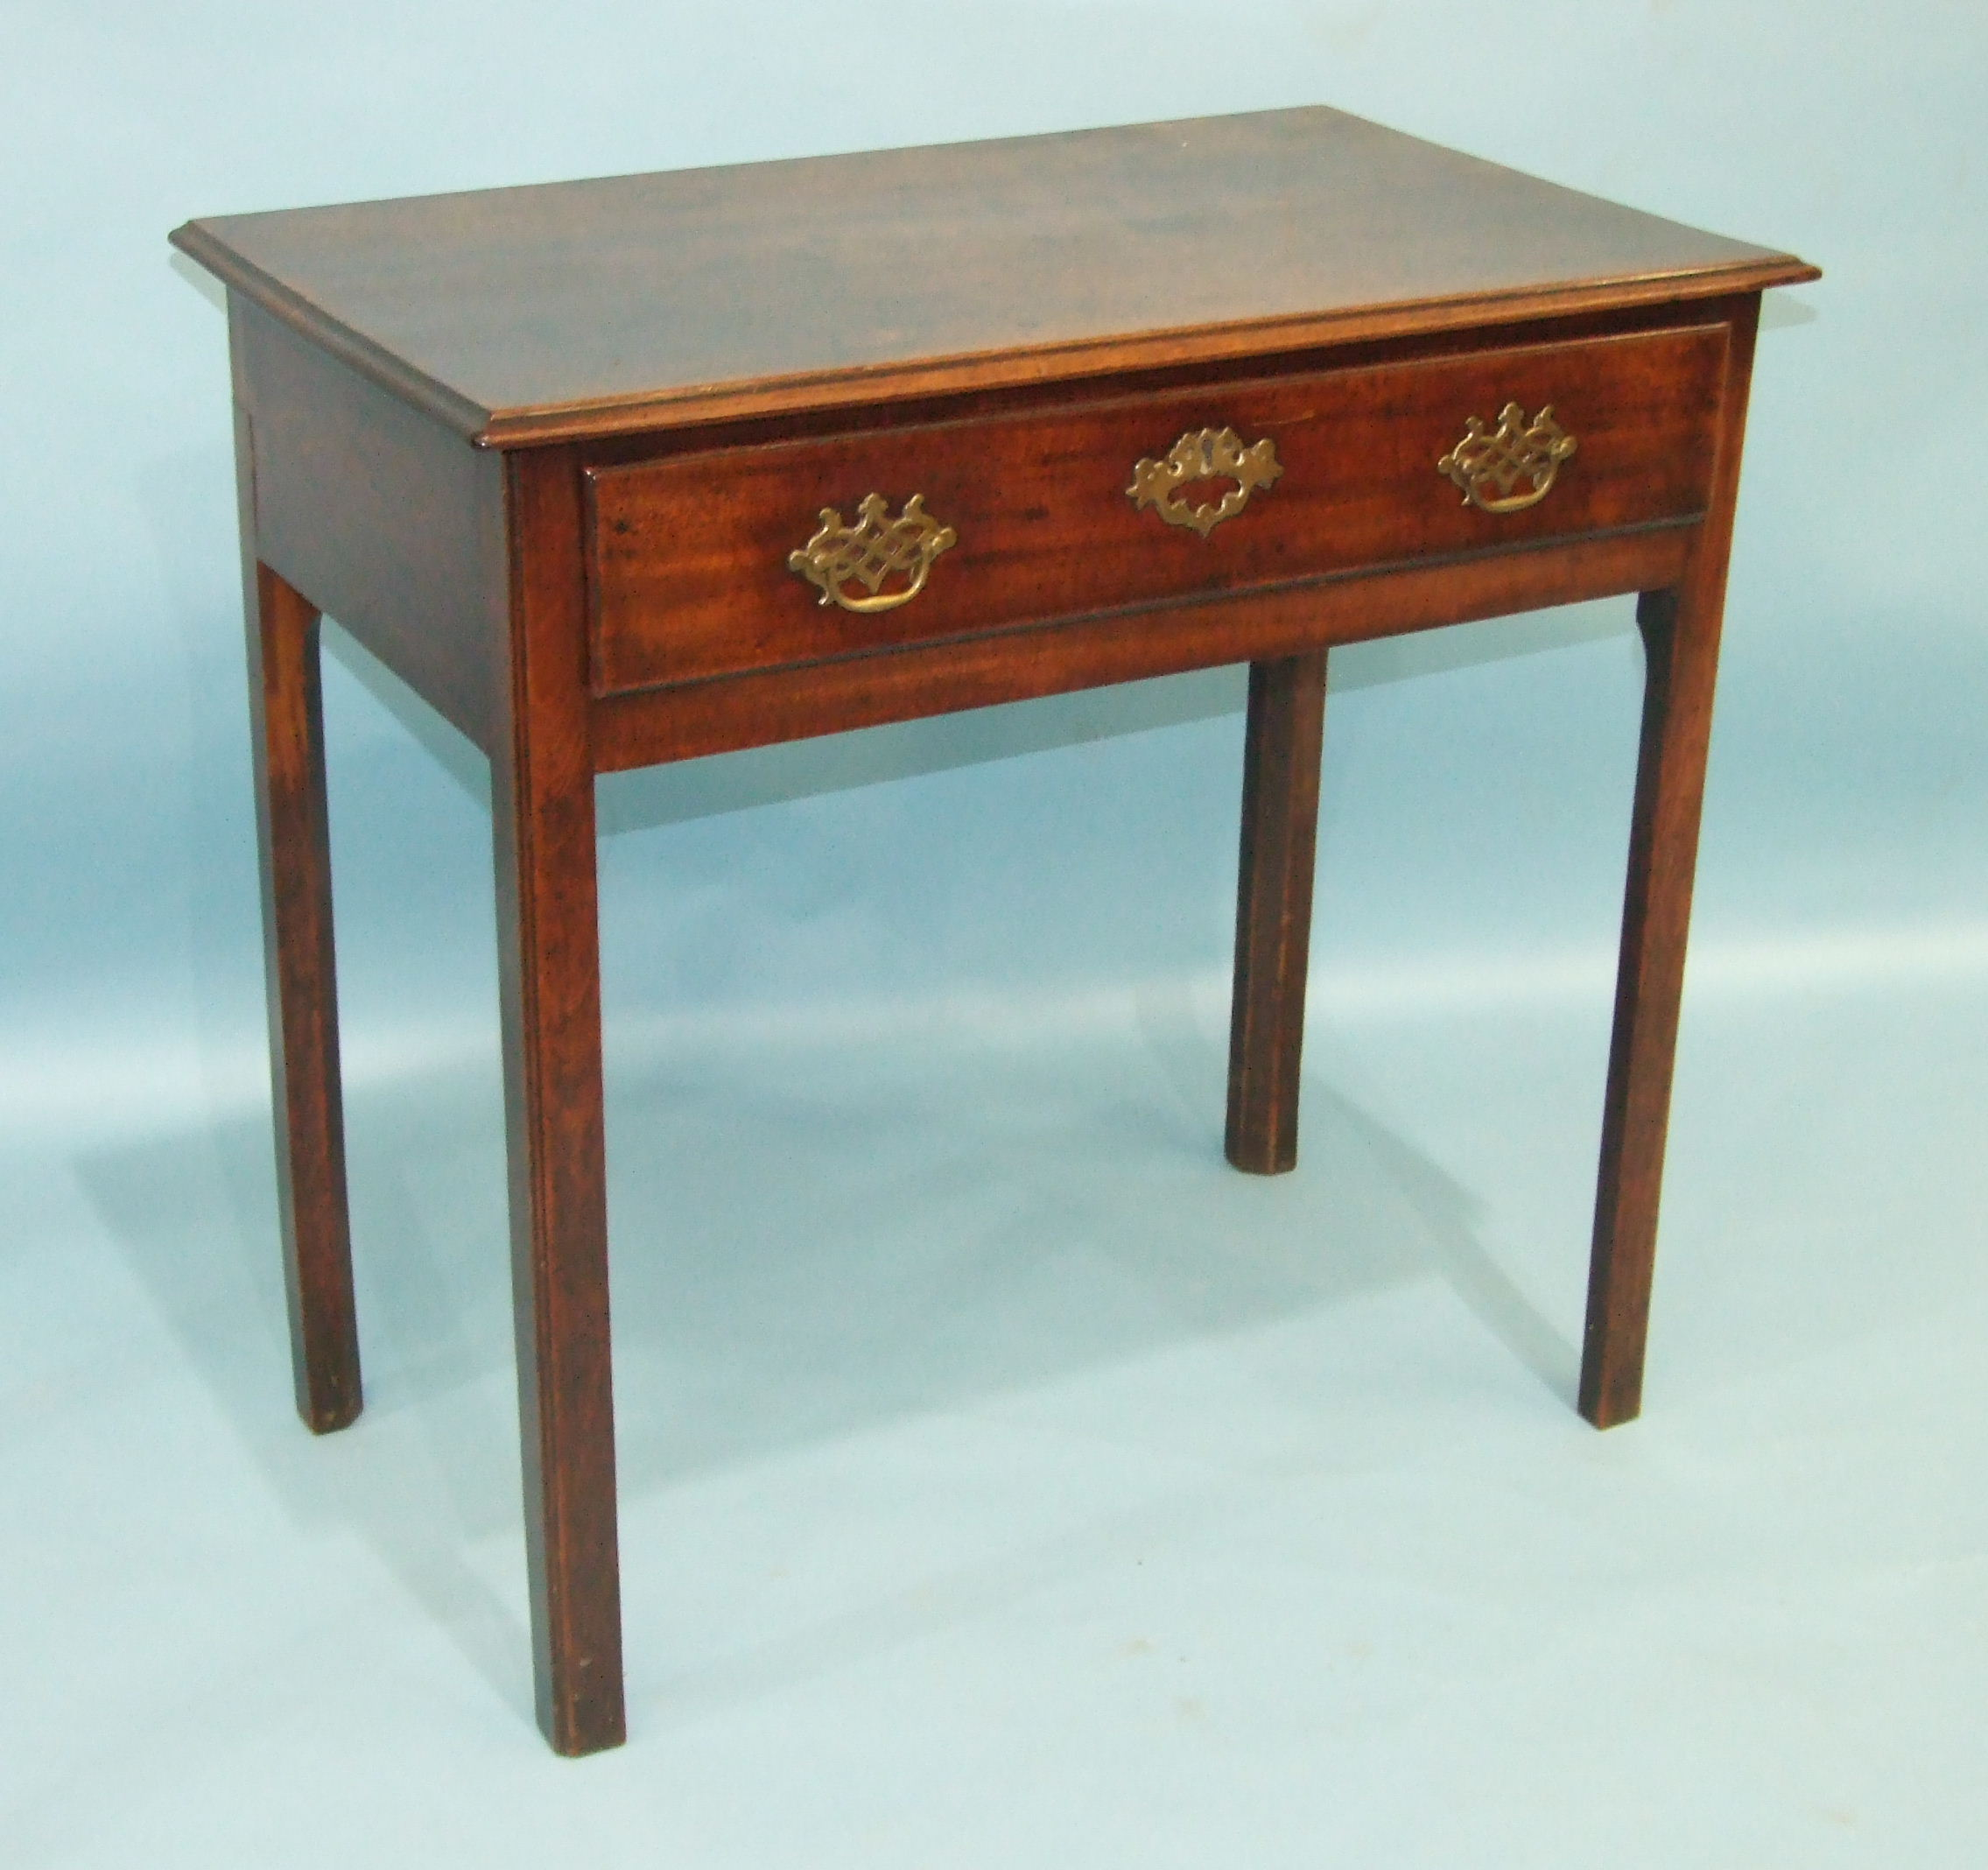 Lot 75 - A George III mahogany side table, the rectangular top with moulded edge above a single drawer, on